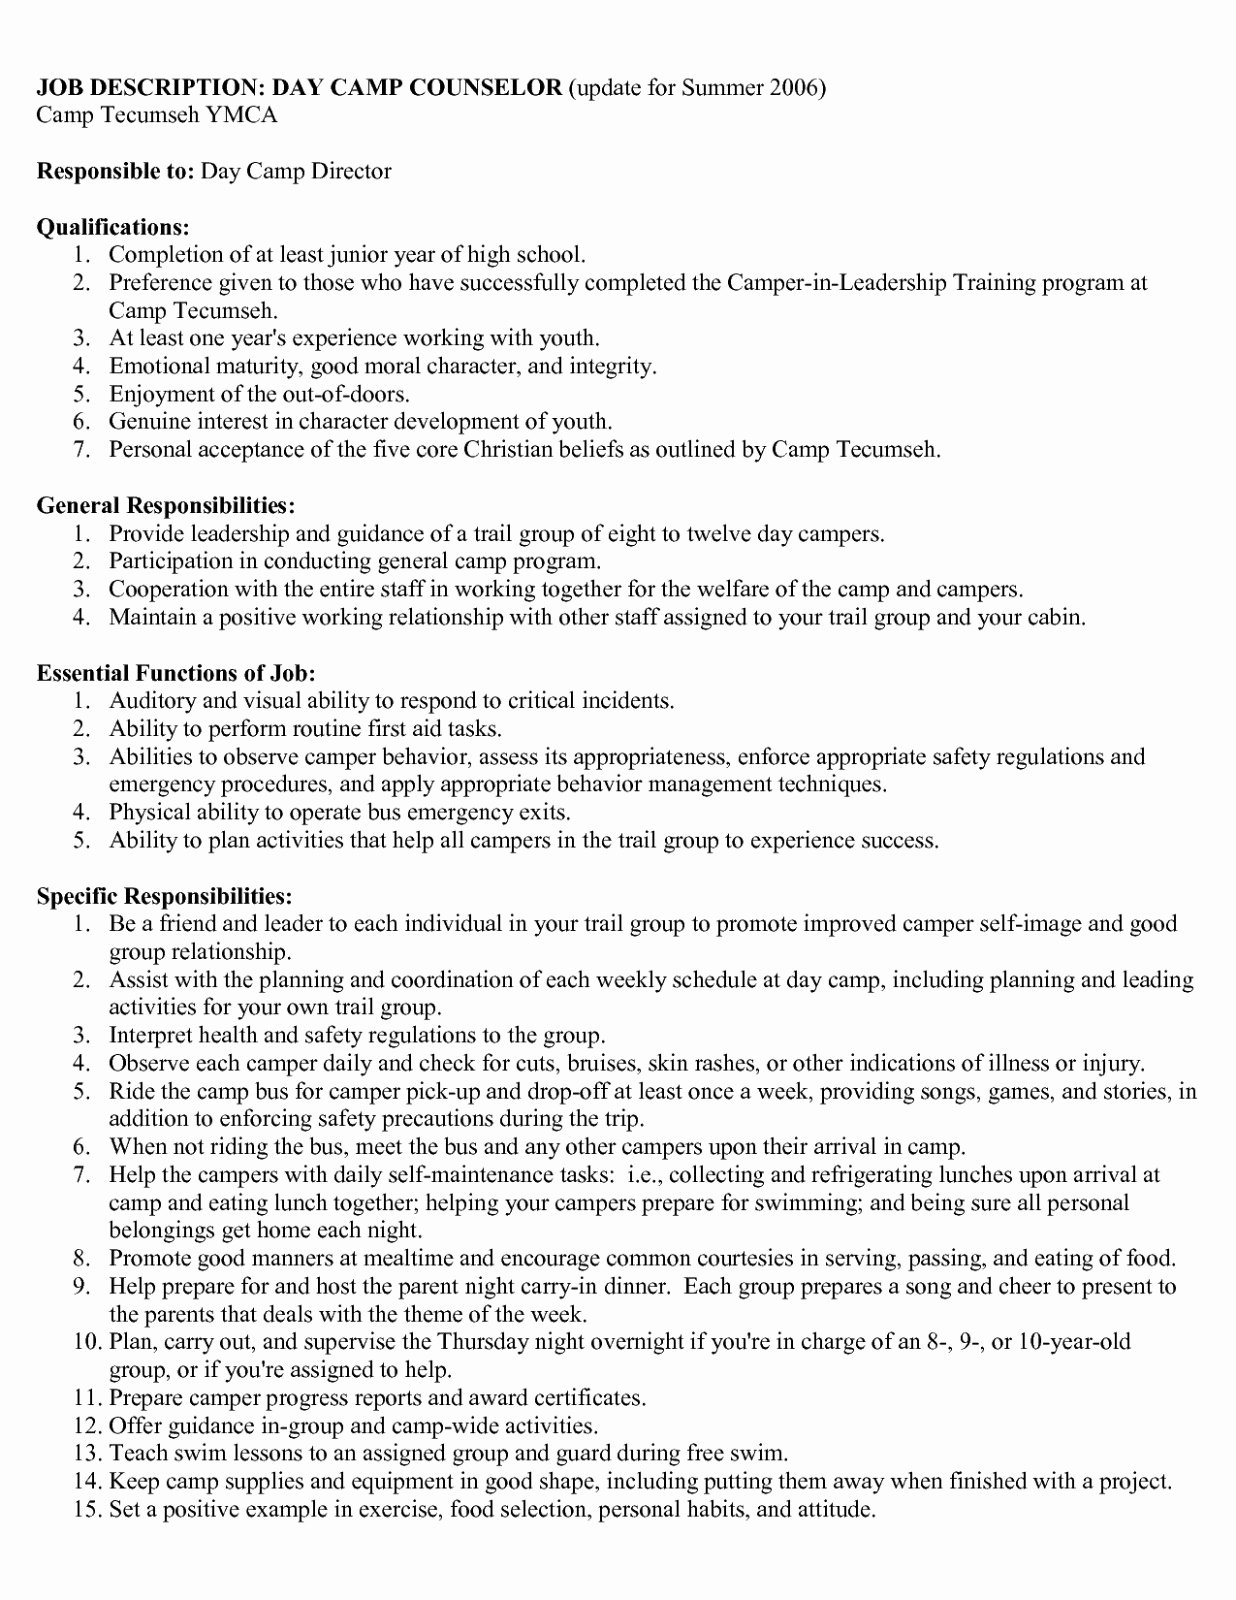 Download Our Sample Summer Camp Counselor Resume